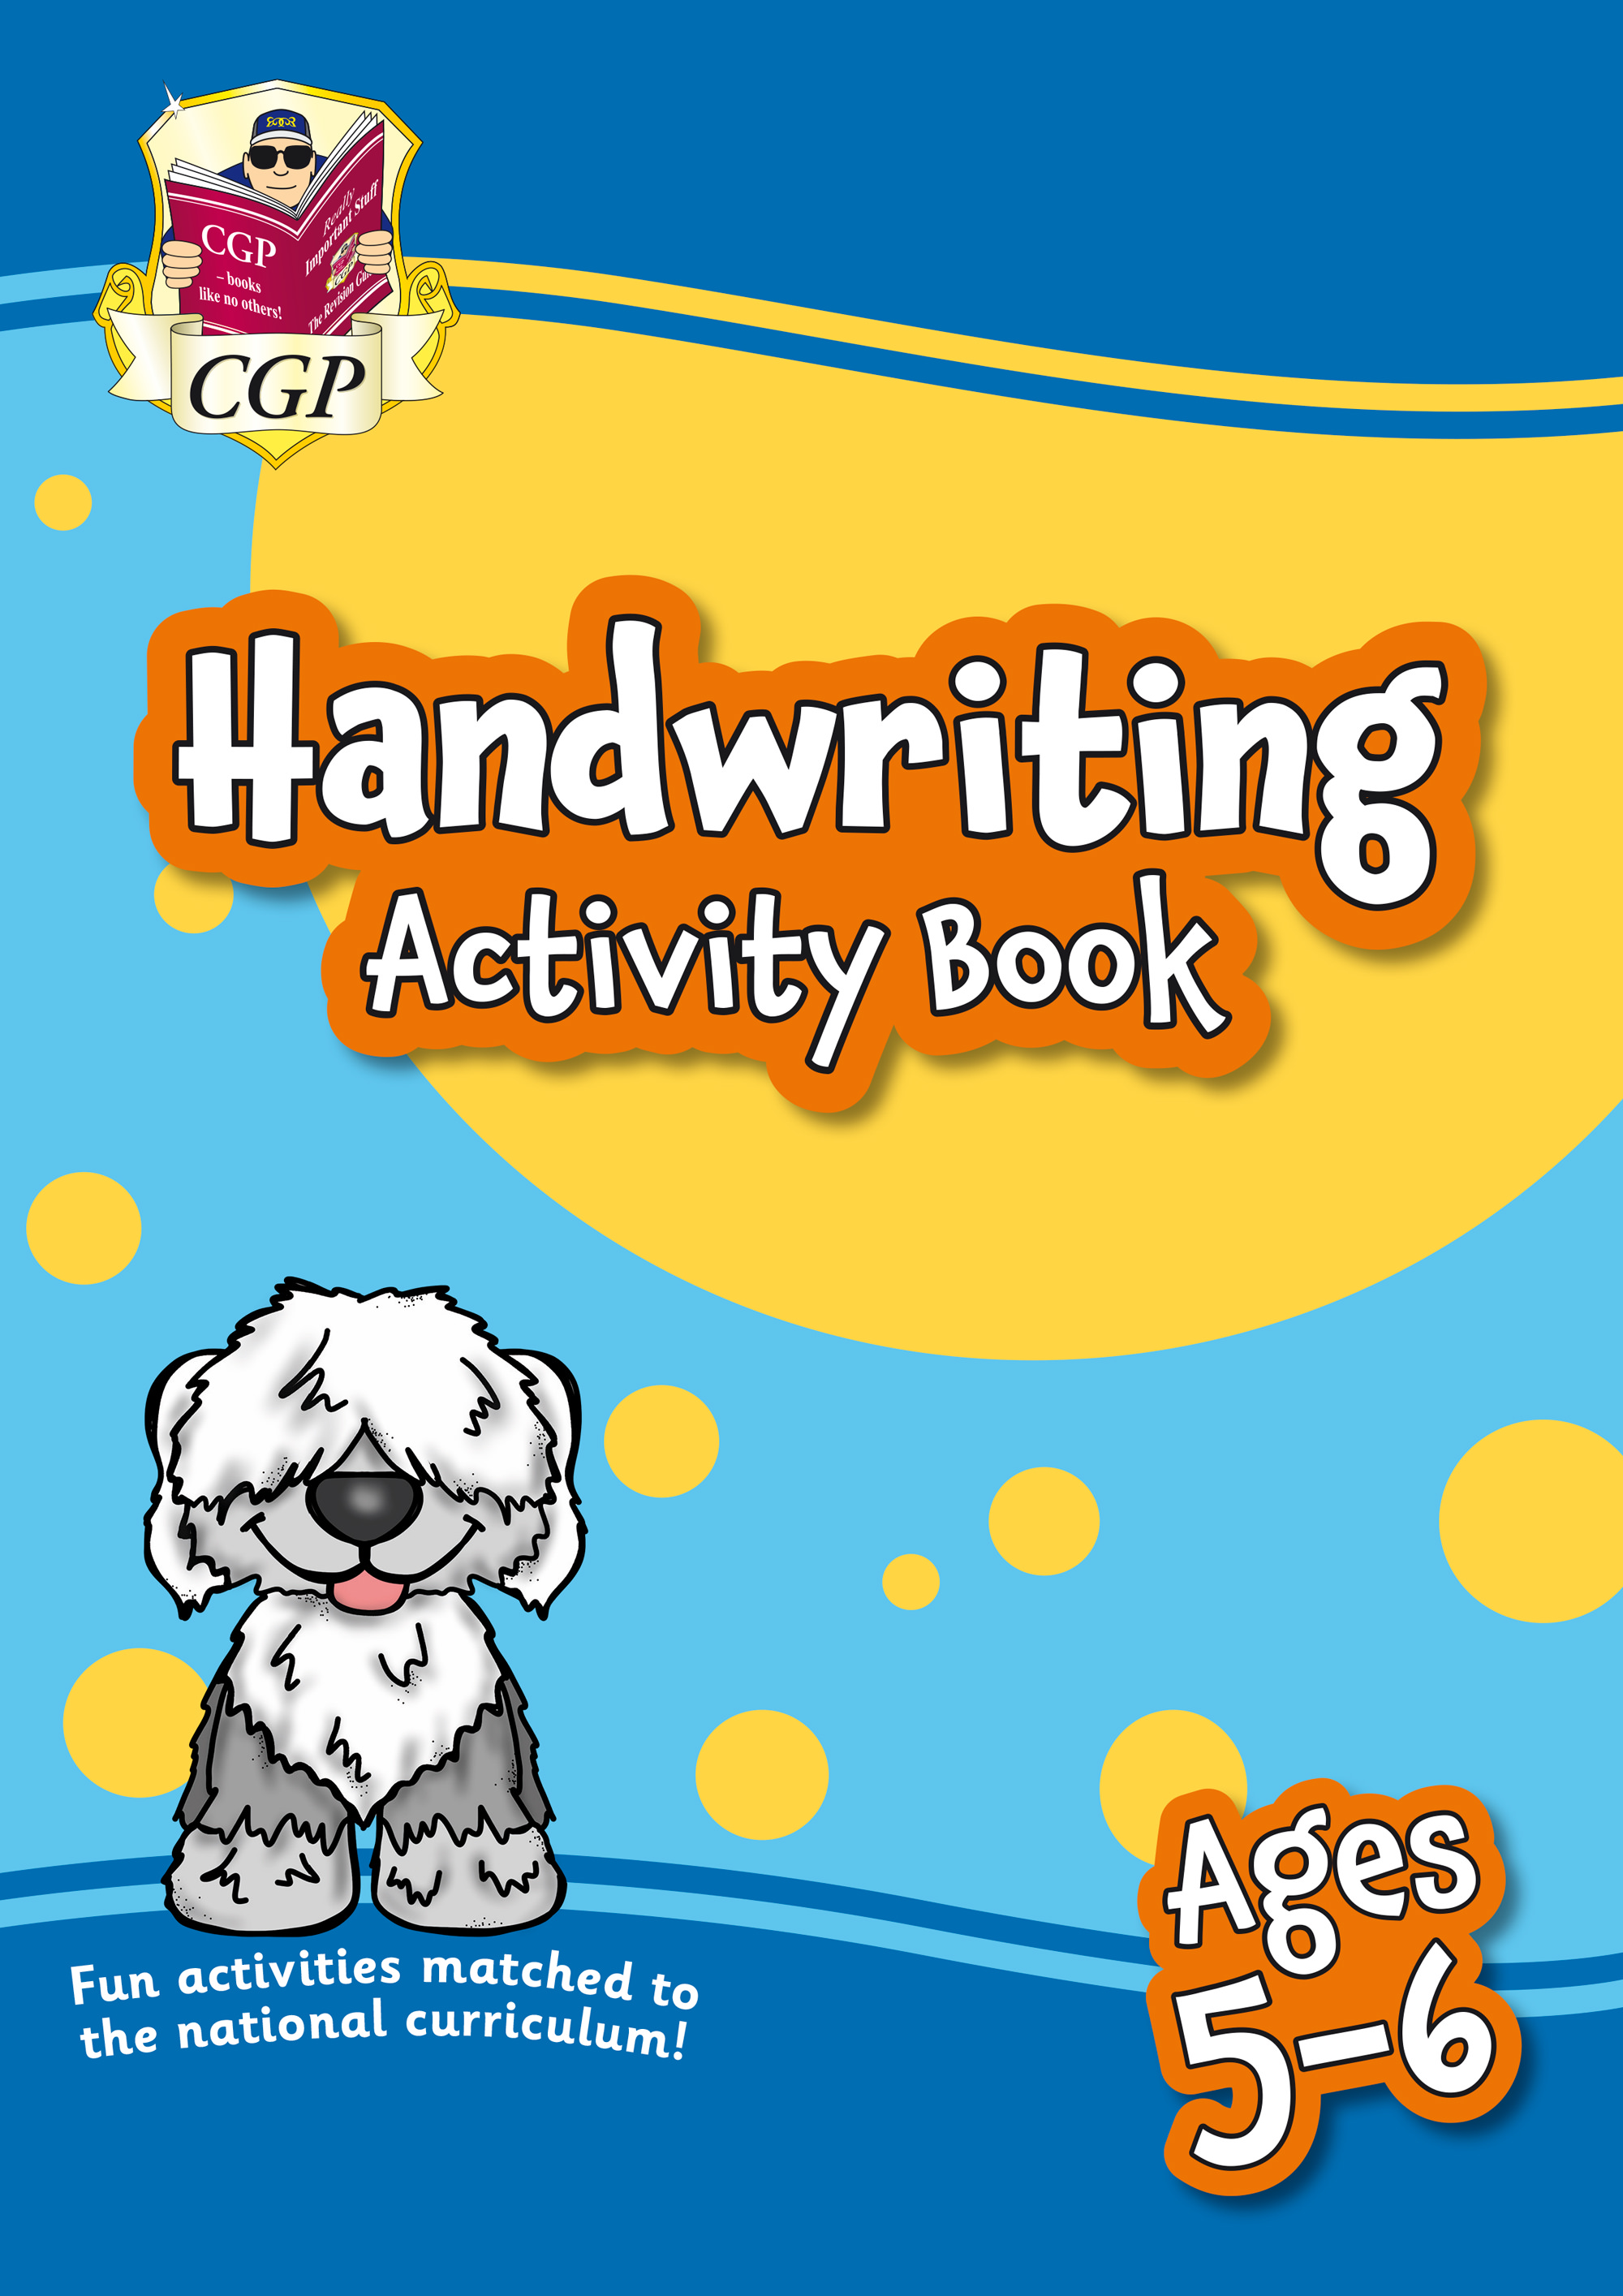 EPF1H11 - New Handwriting Home Learning Activity Book for Ages 5-6